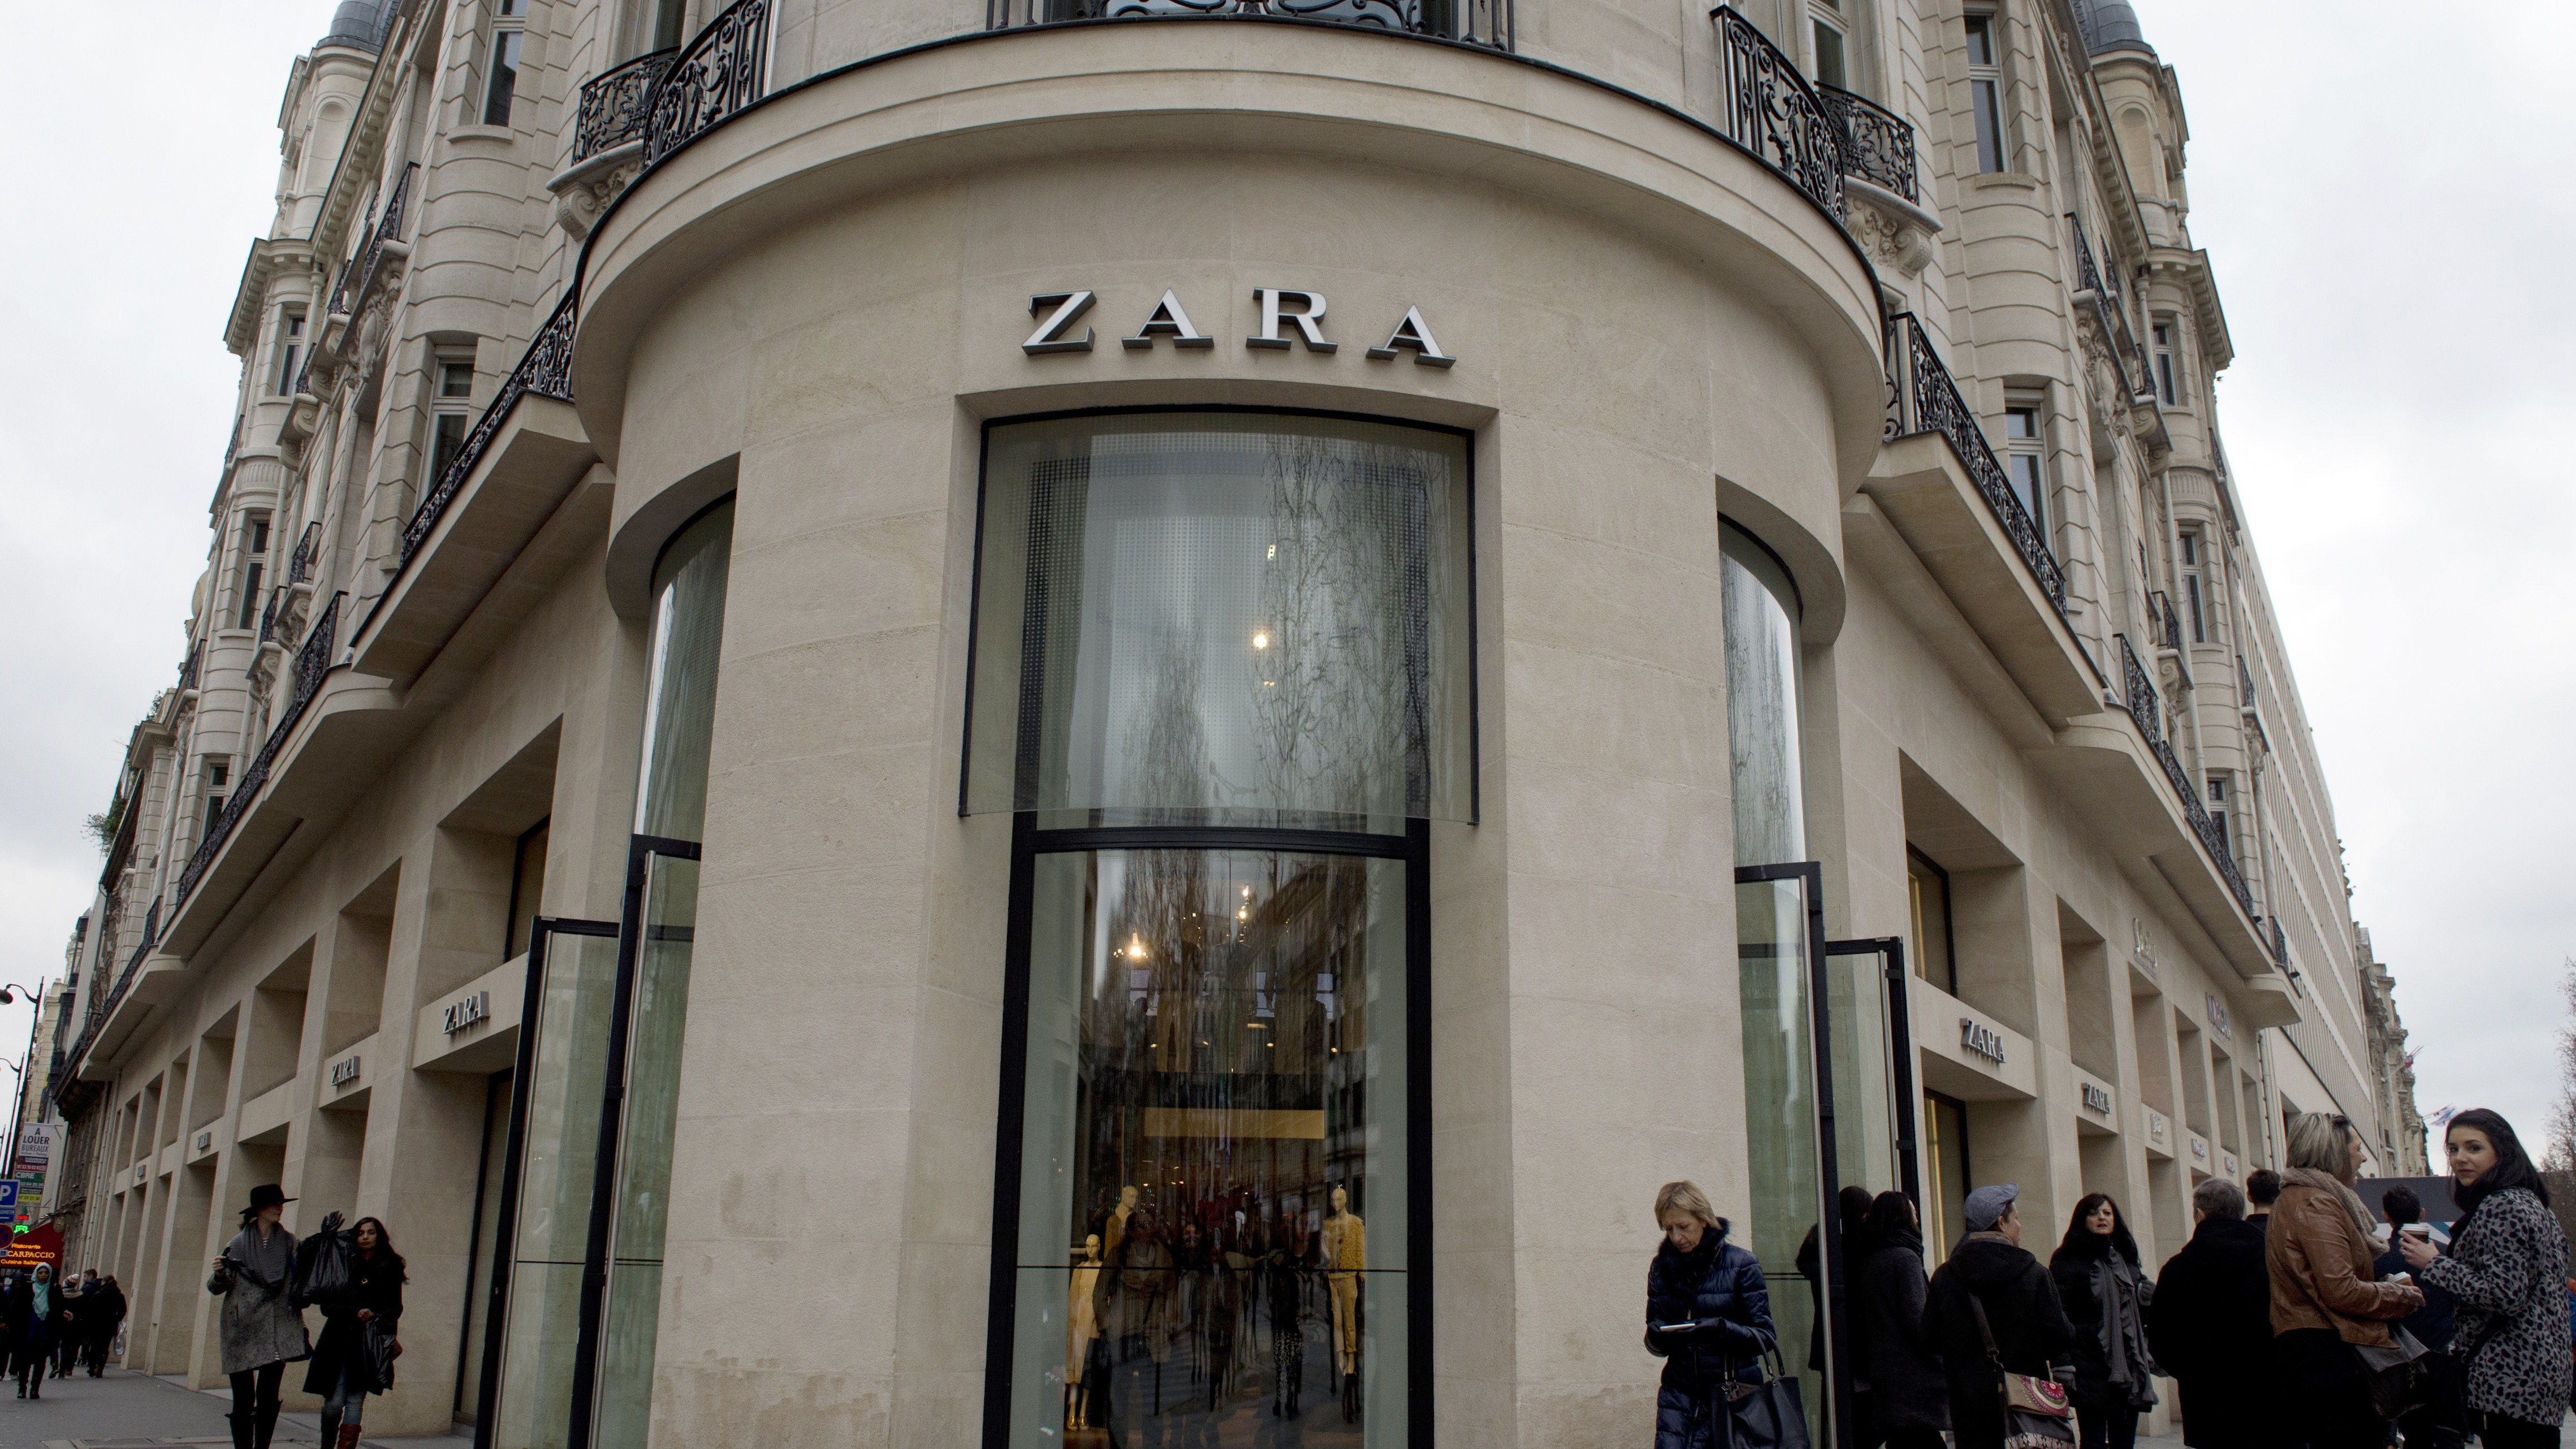 People go shopping at a Zara store on the Champs-Elysees avenue in Paris, on February 15, 2015.